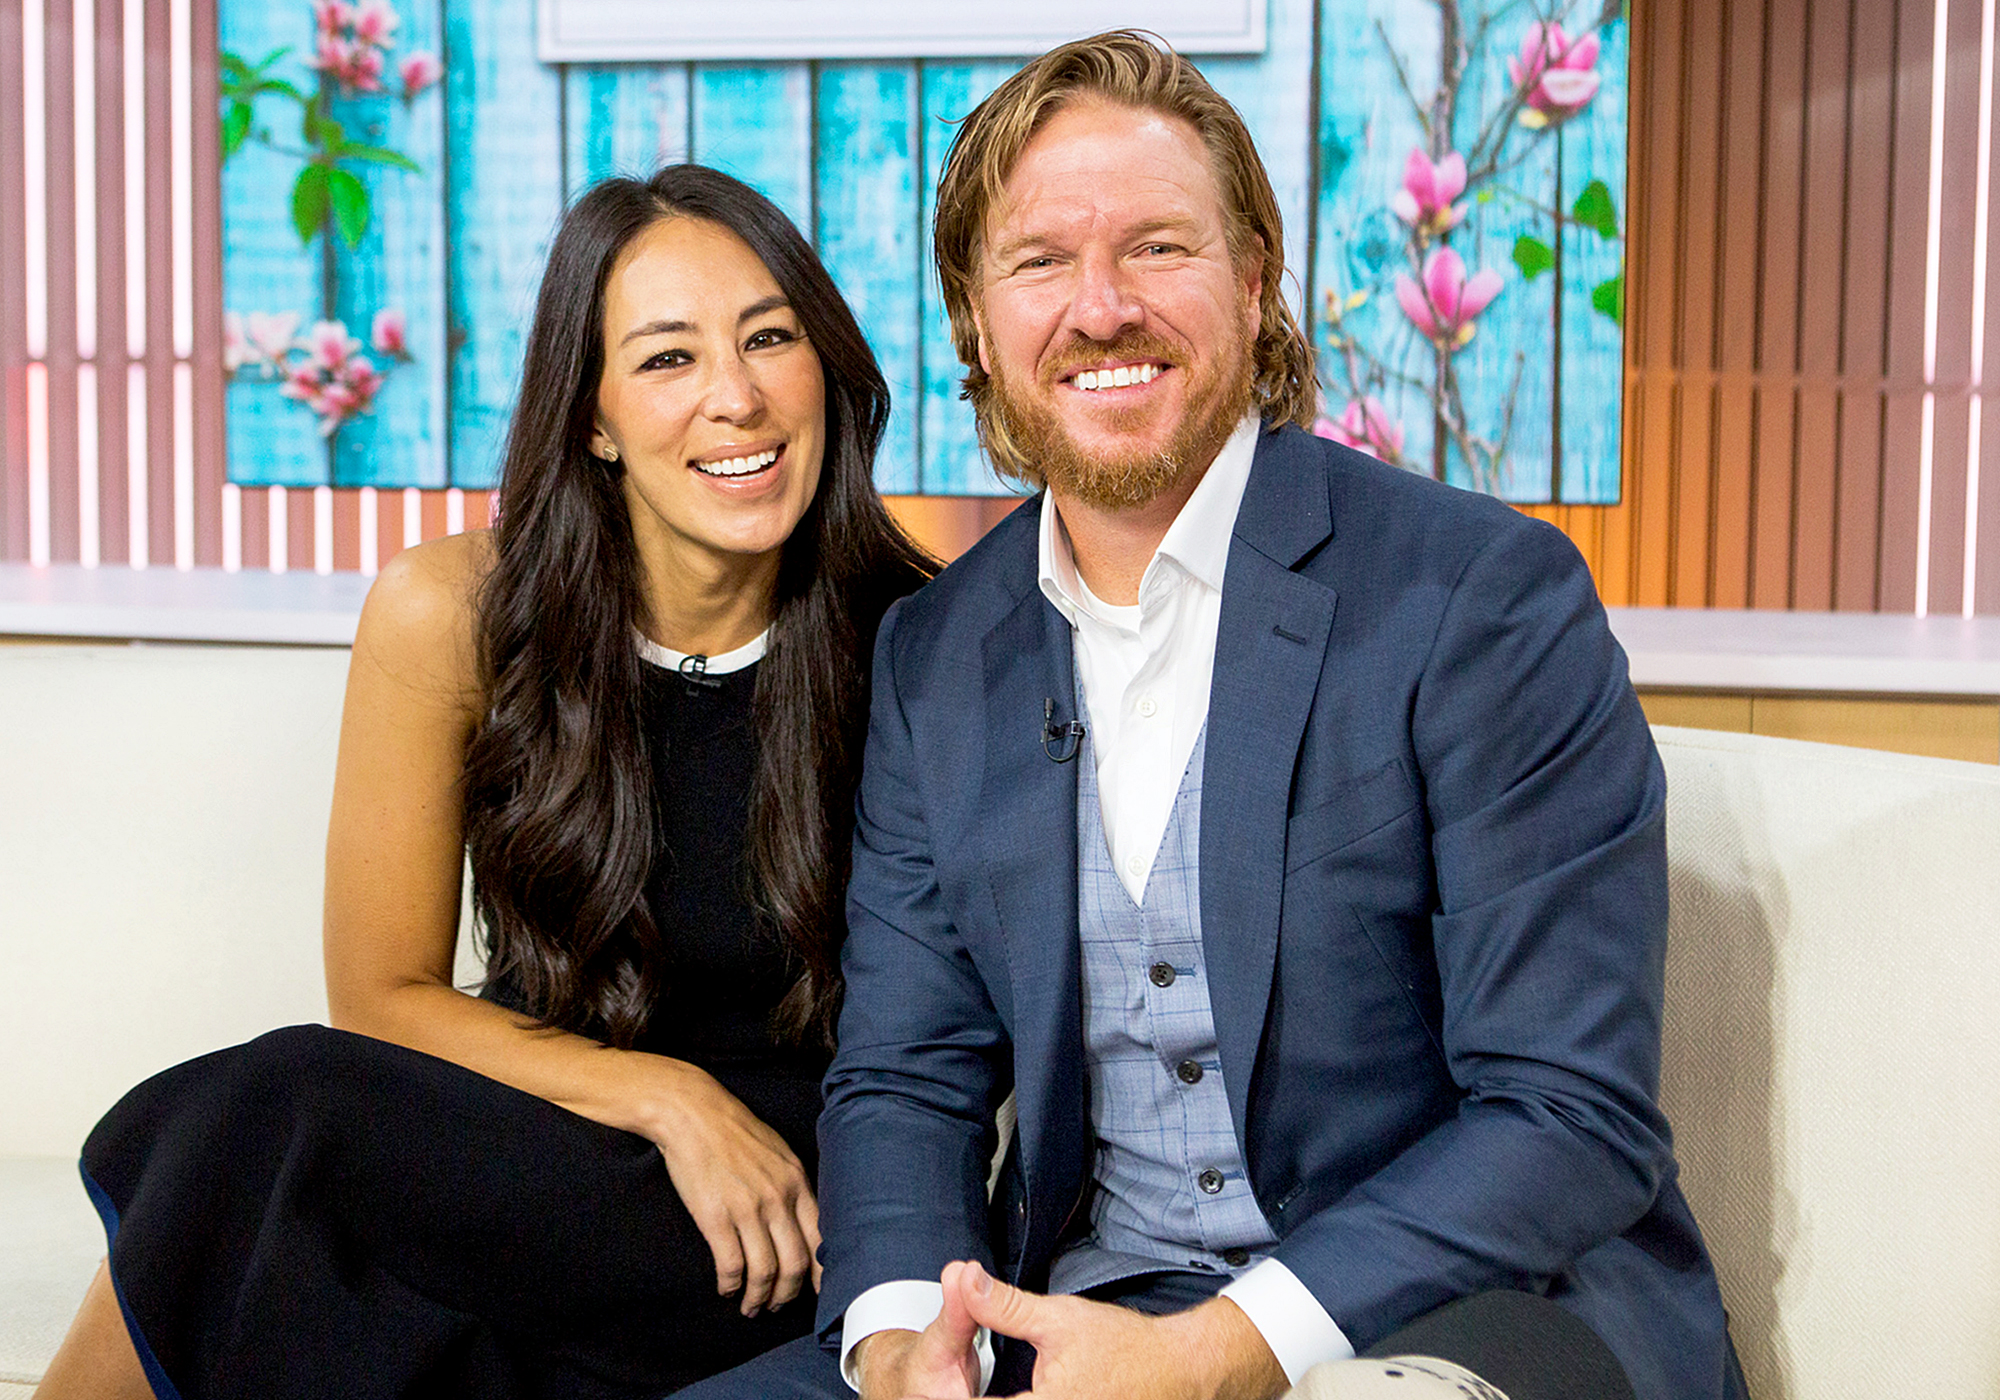 Joanna Gaines shares husband Chip's newborn baby tradition